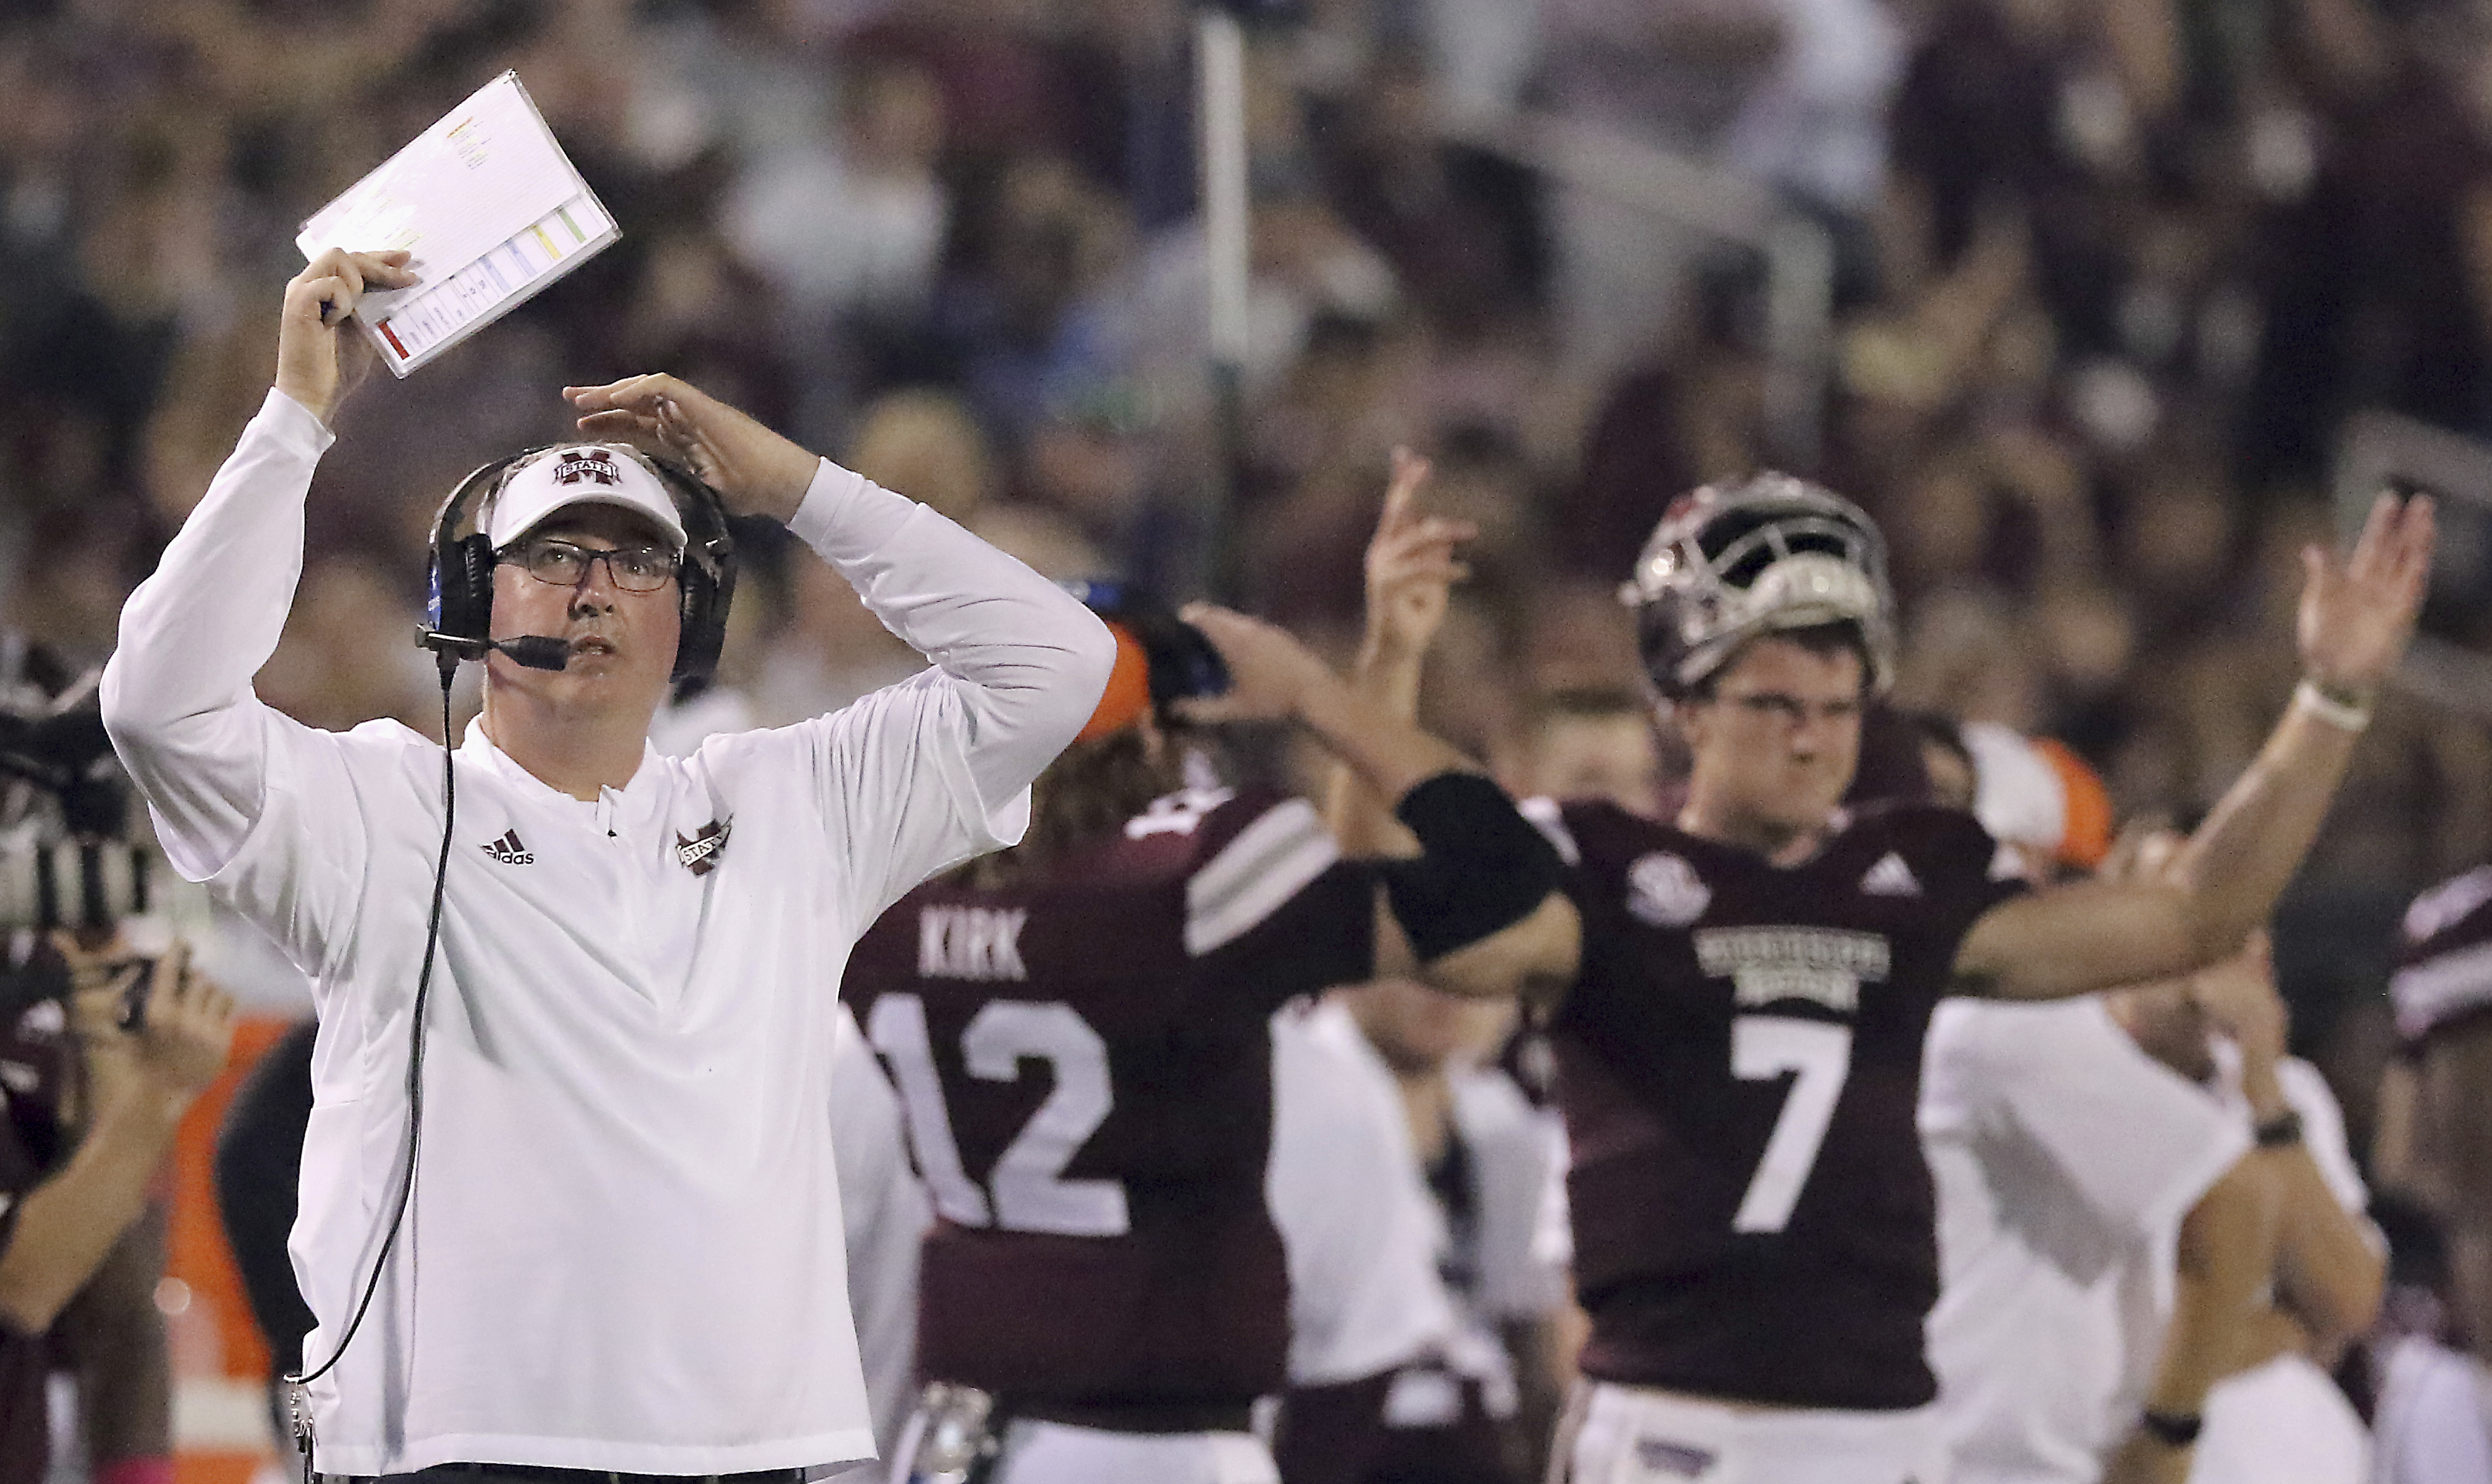 Mississippi State head coach Joe Moorhead, left and quarterback Nick Fitzgerald (7) both react to the replay on the video board while game officials reviewed the play making sure Fitzgerald had indeed crossed the goal line and scored a touchdown during the first half of their game against Auburn on Oct. 6, 2018, in Starkville, Miss. (AP Photo/Jim Lyle)